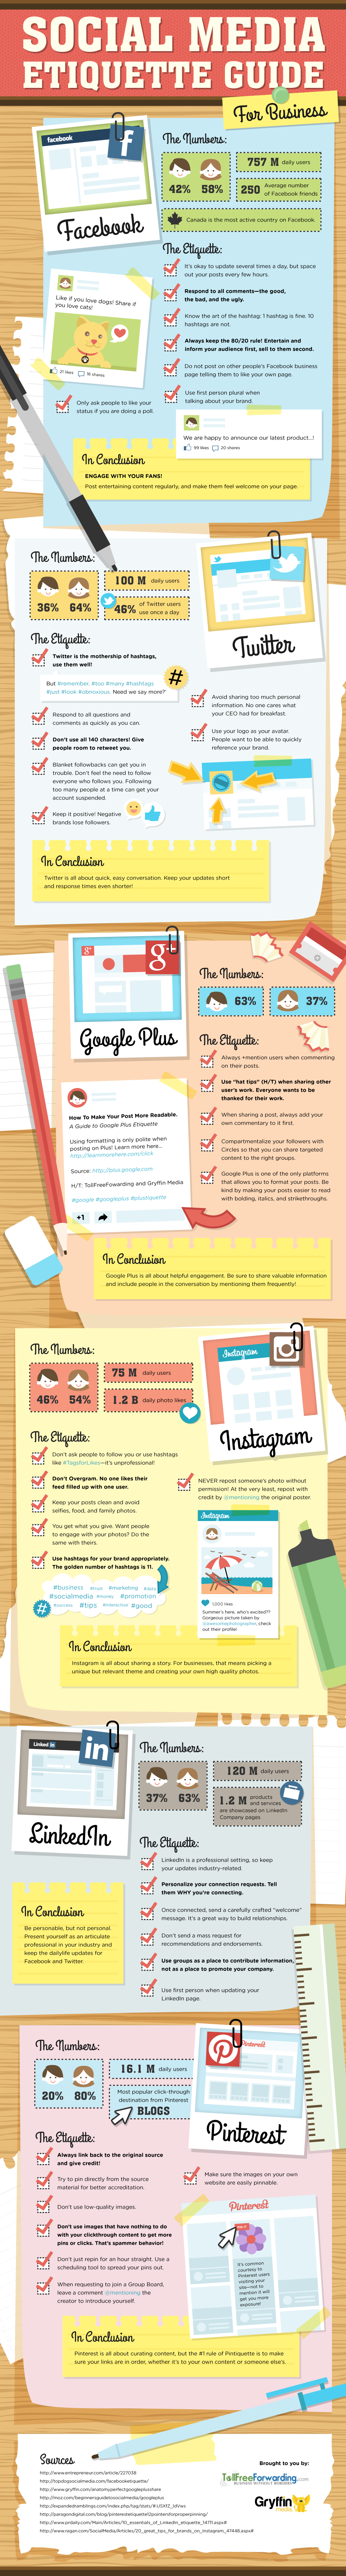 Ultimate Guide to Social Media Etiquette